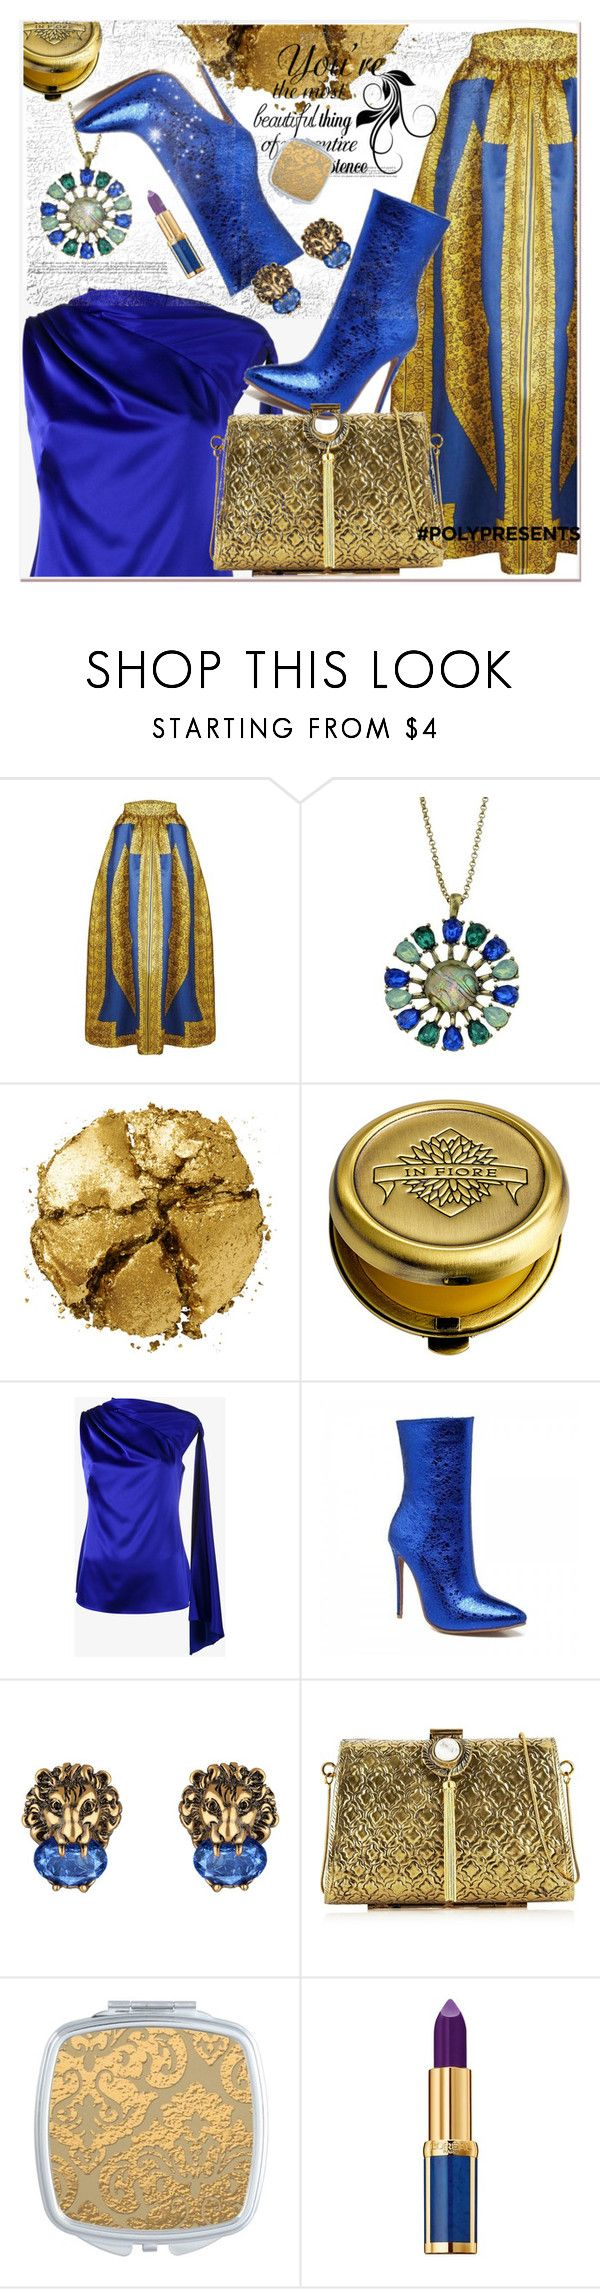 """#PolyPresents: Last-Minute Gifts"" by selmir ❤ liked on Polyvore featuring Pat McGrath, In Fiore, Osman, Gucci, From St Xavier and Balmain"